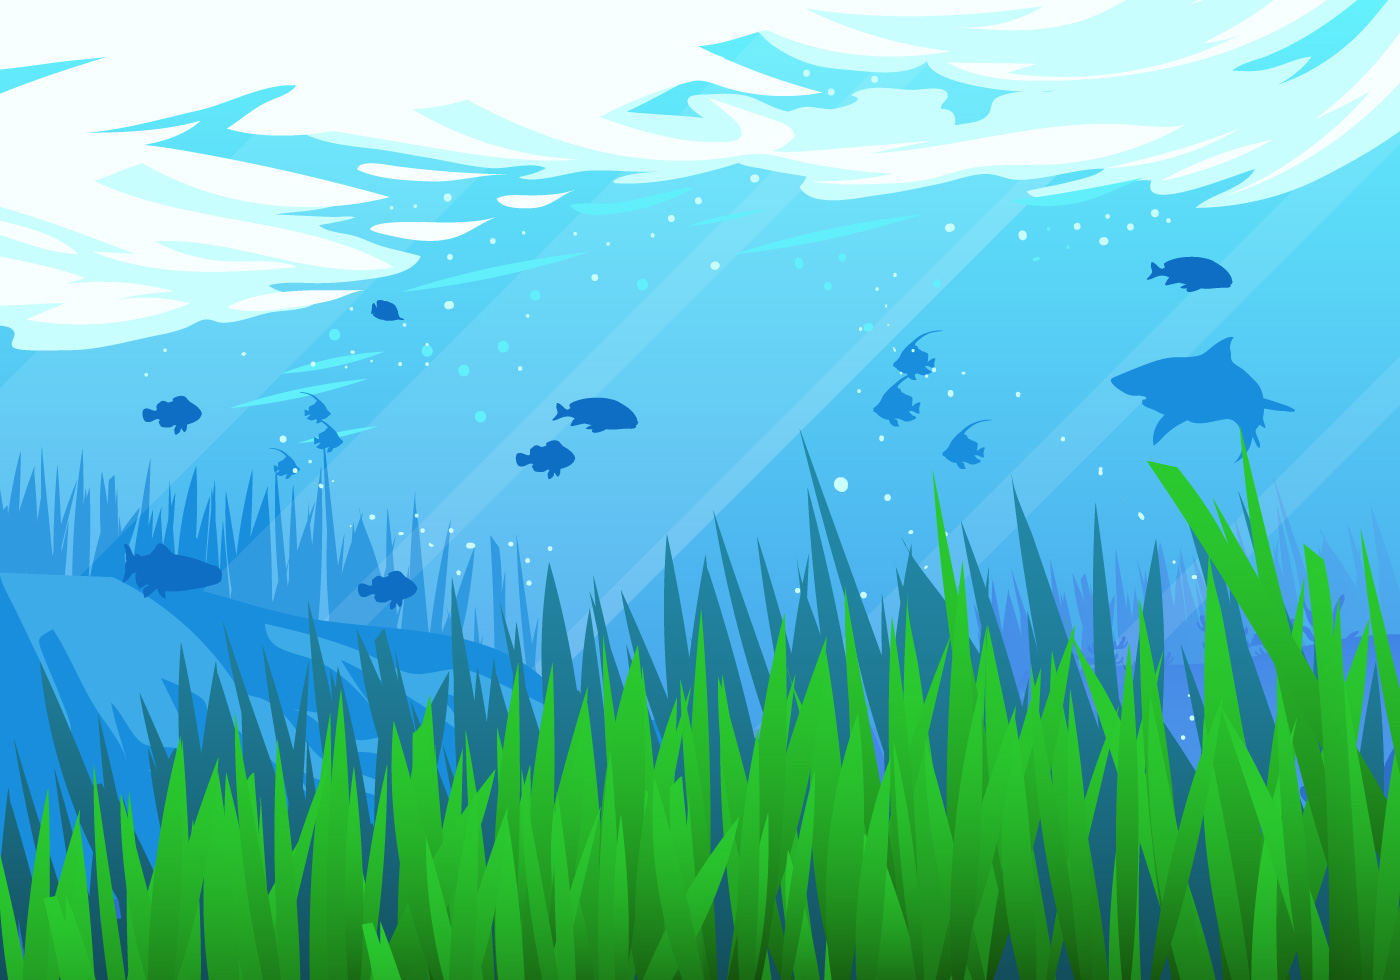 Underwater Free Vector Art - (24,123 Free Downloads)